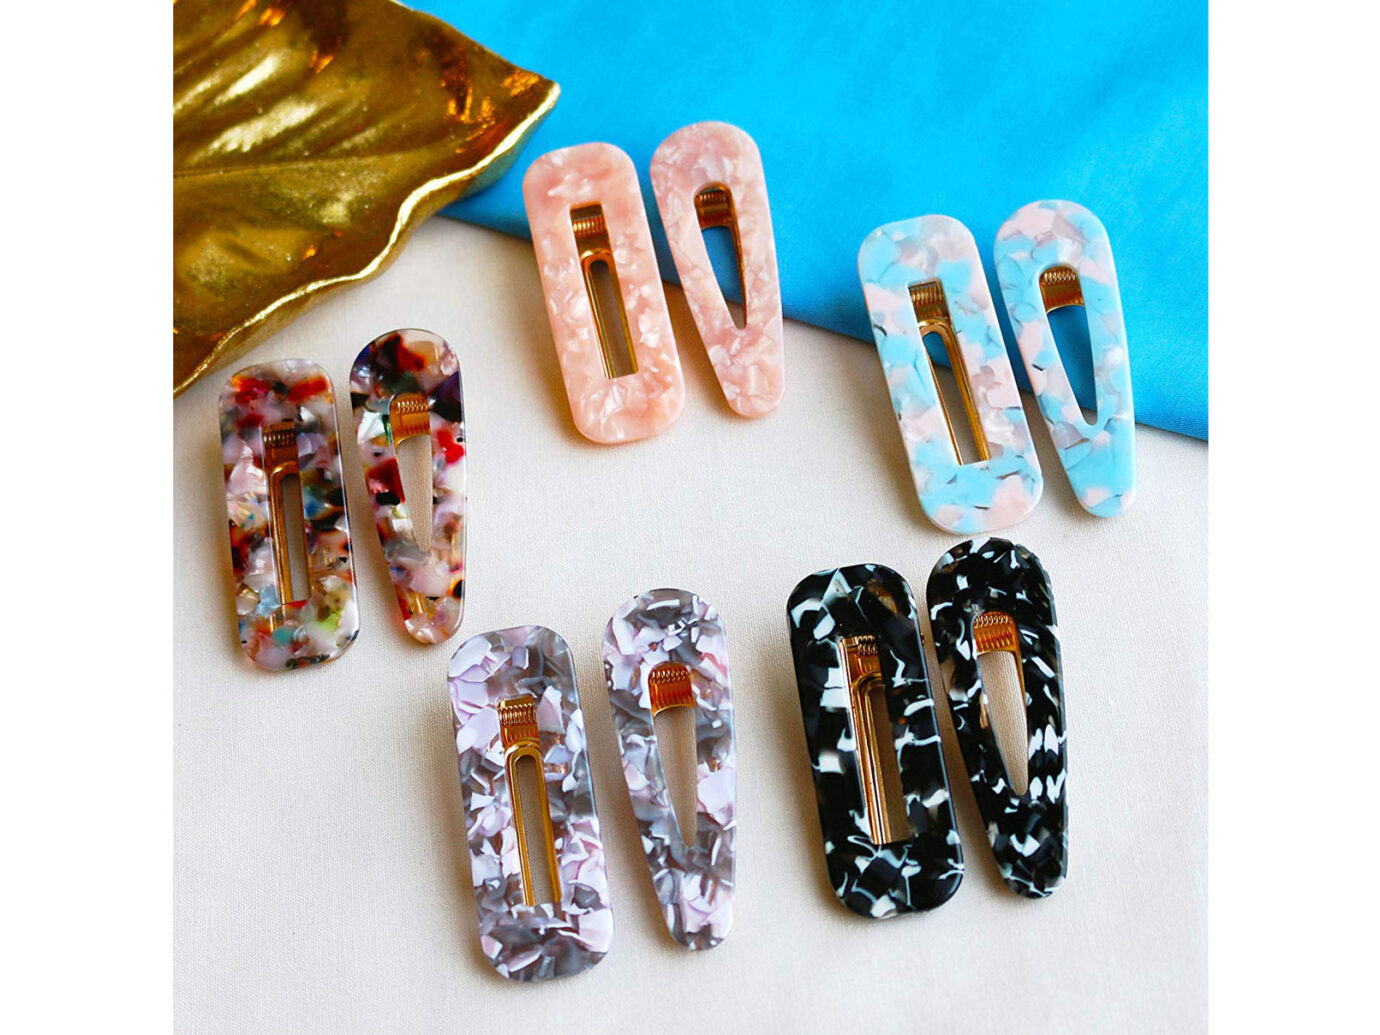 Cholet Acrylic Resin Hair Barrettes